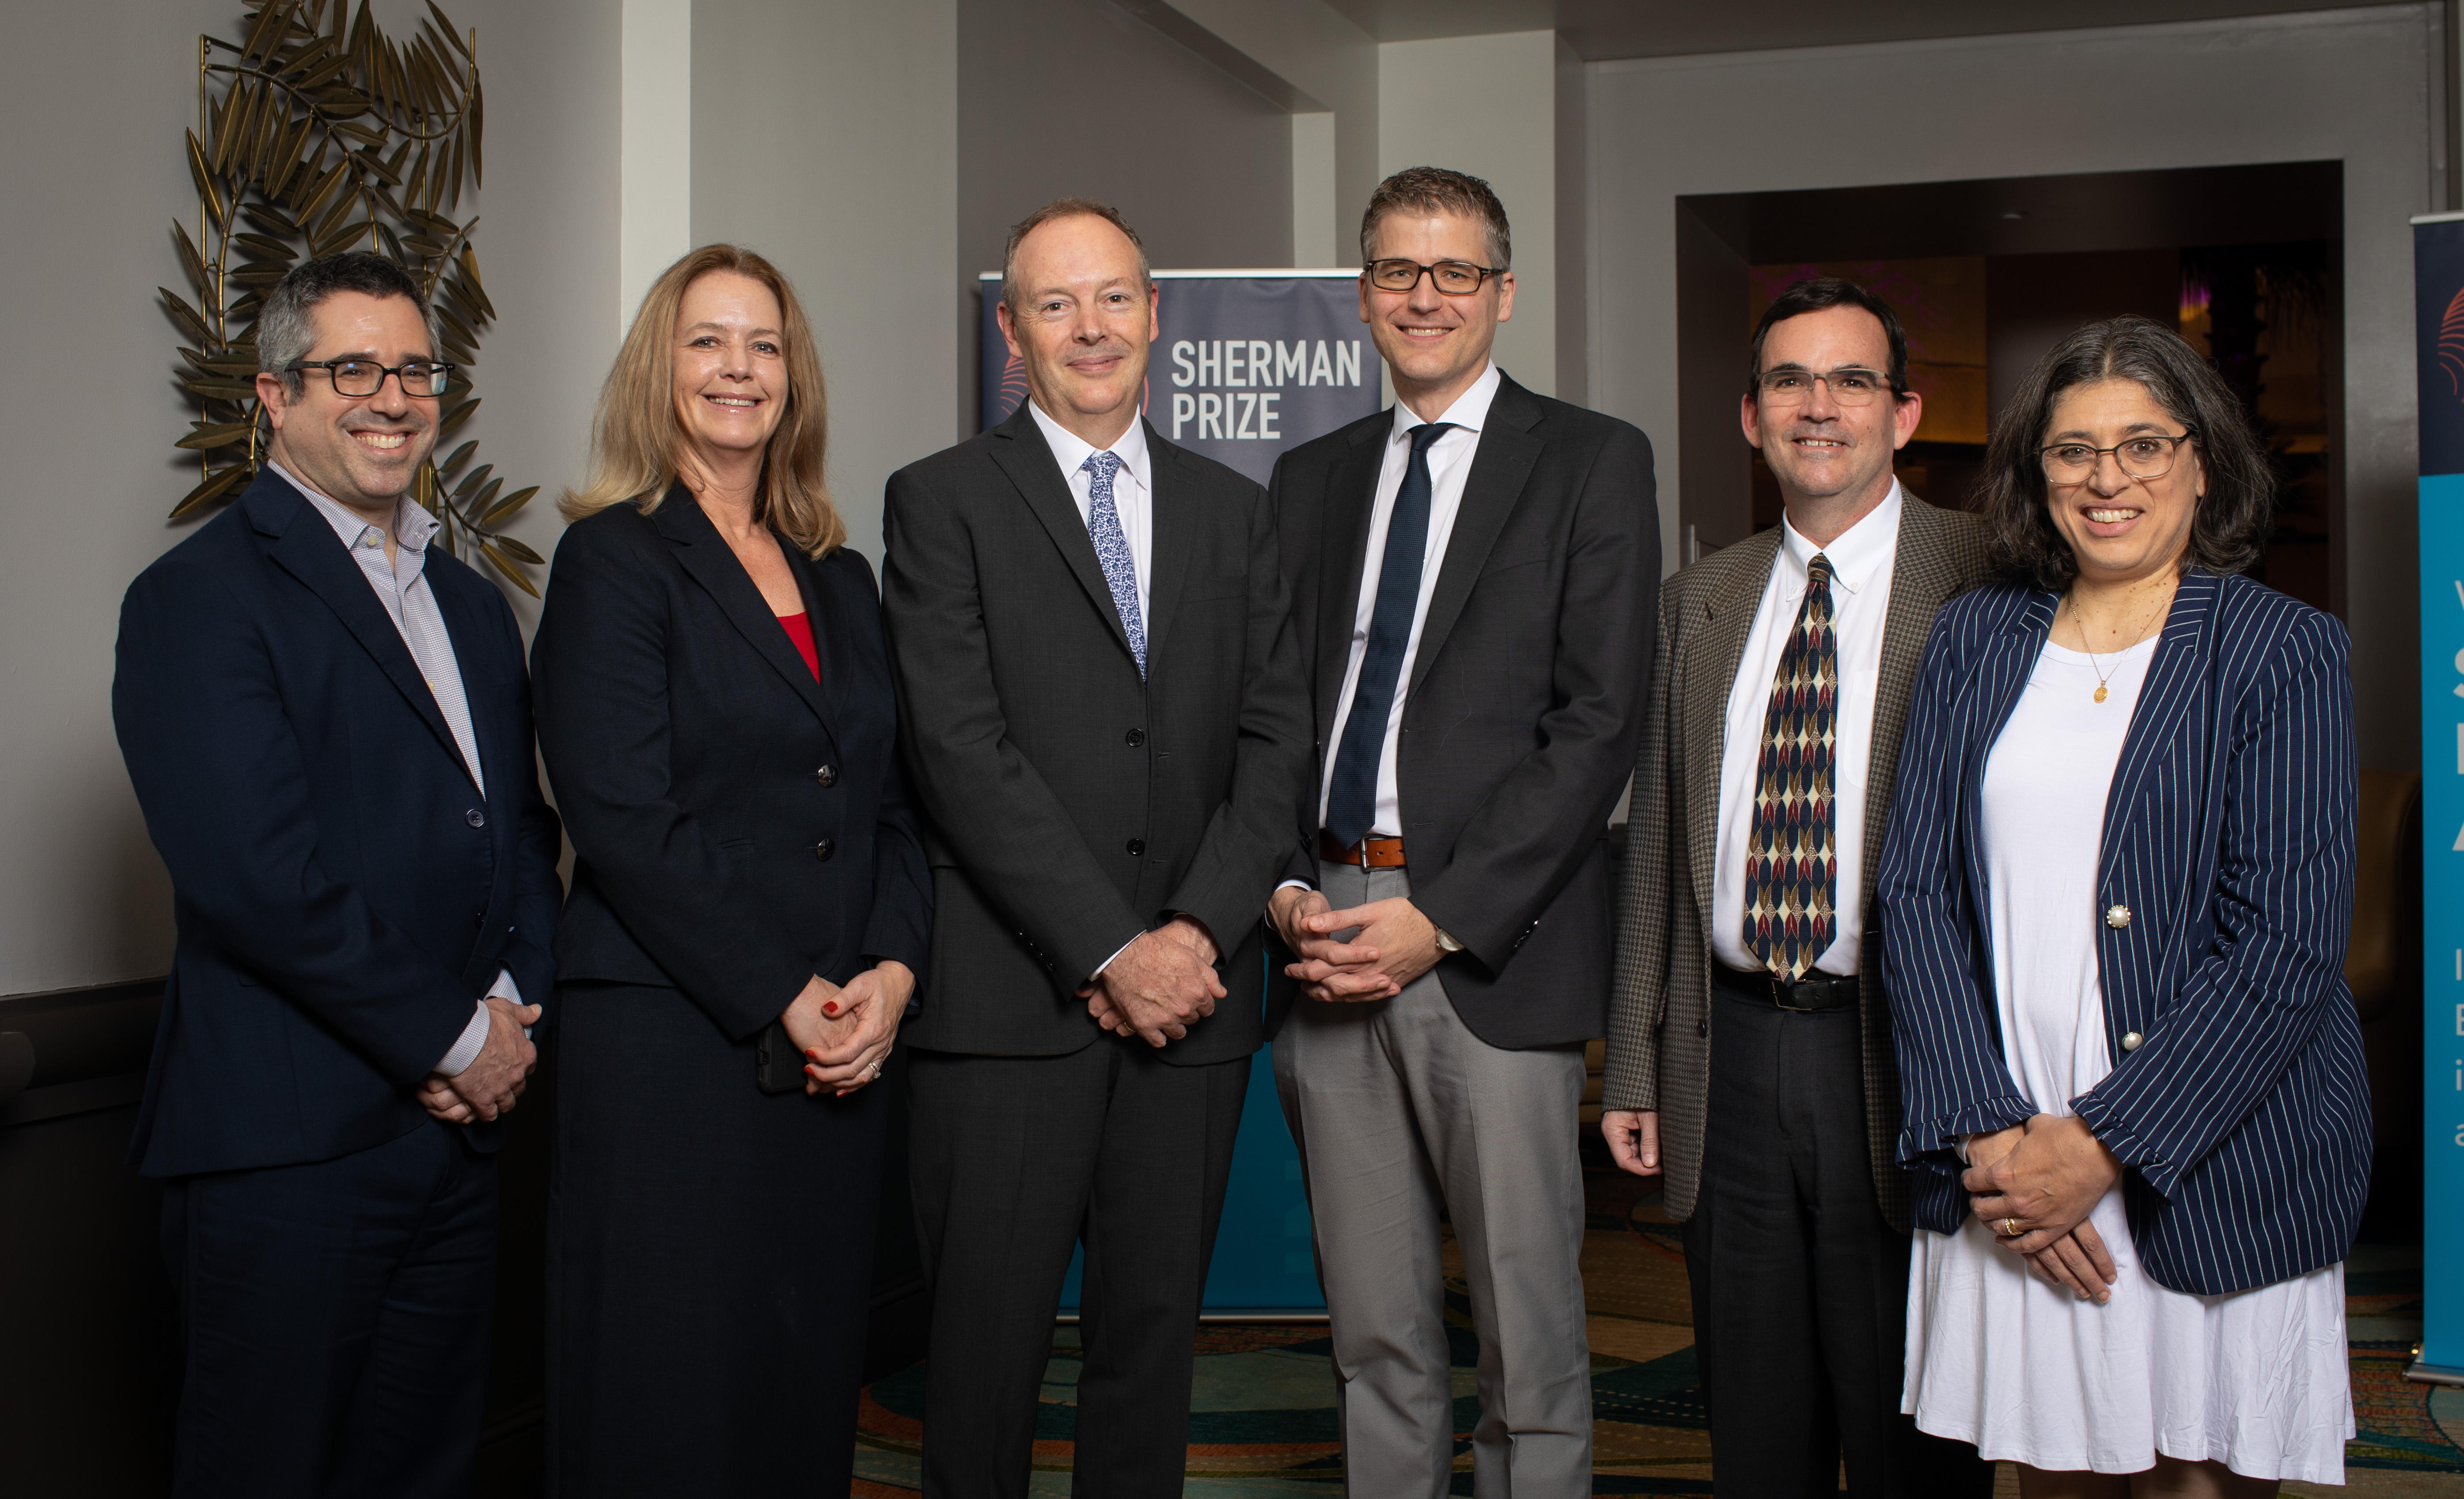 <p>2019 Selection Committee with 2019 Sherman Emerging Leader Prize Recipient Dr. Florian Rieder</p>